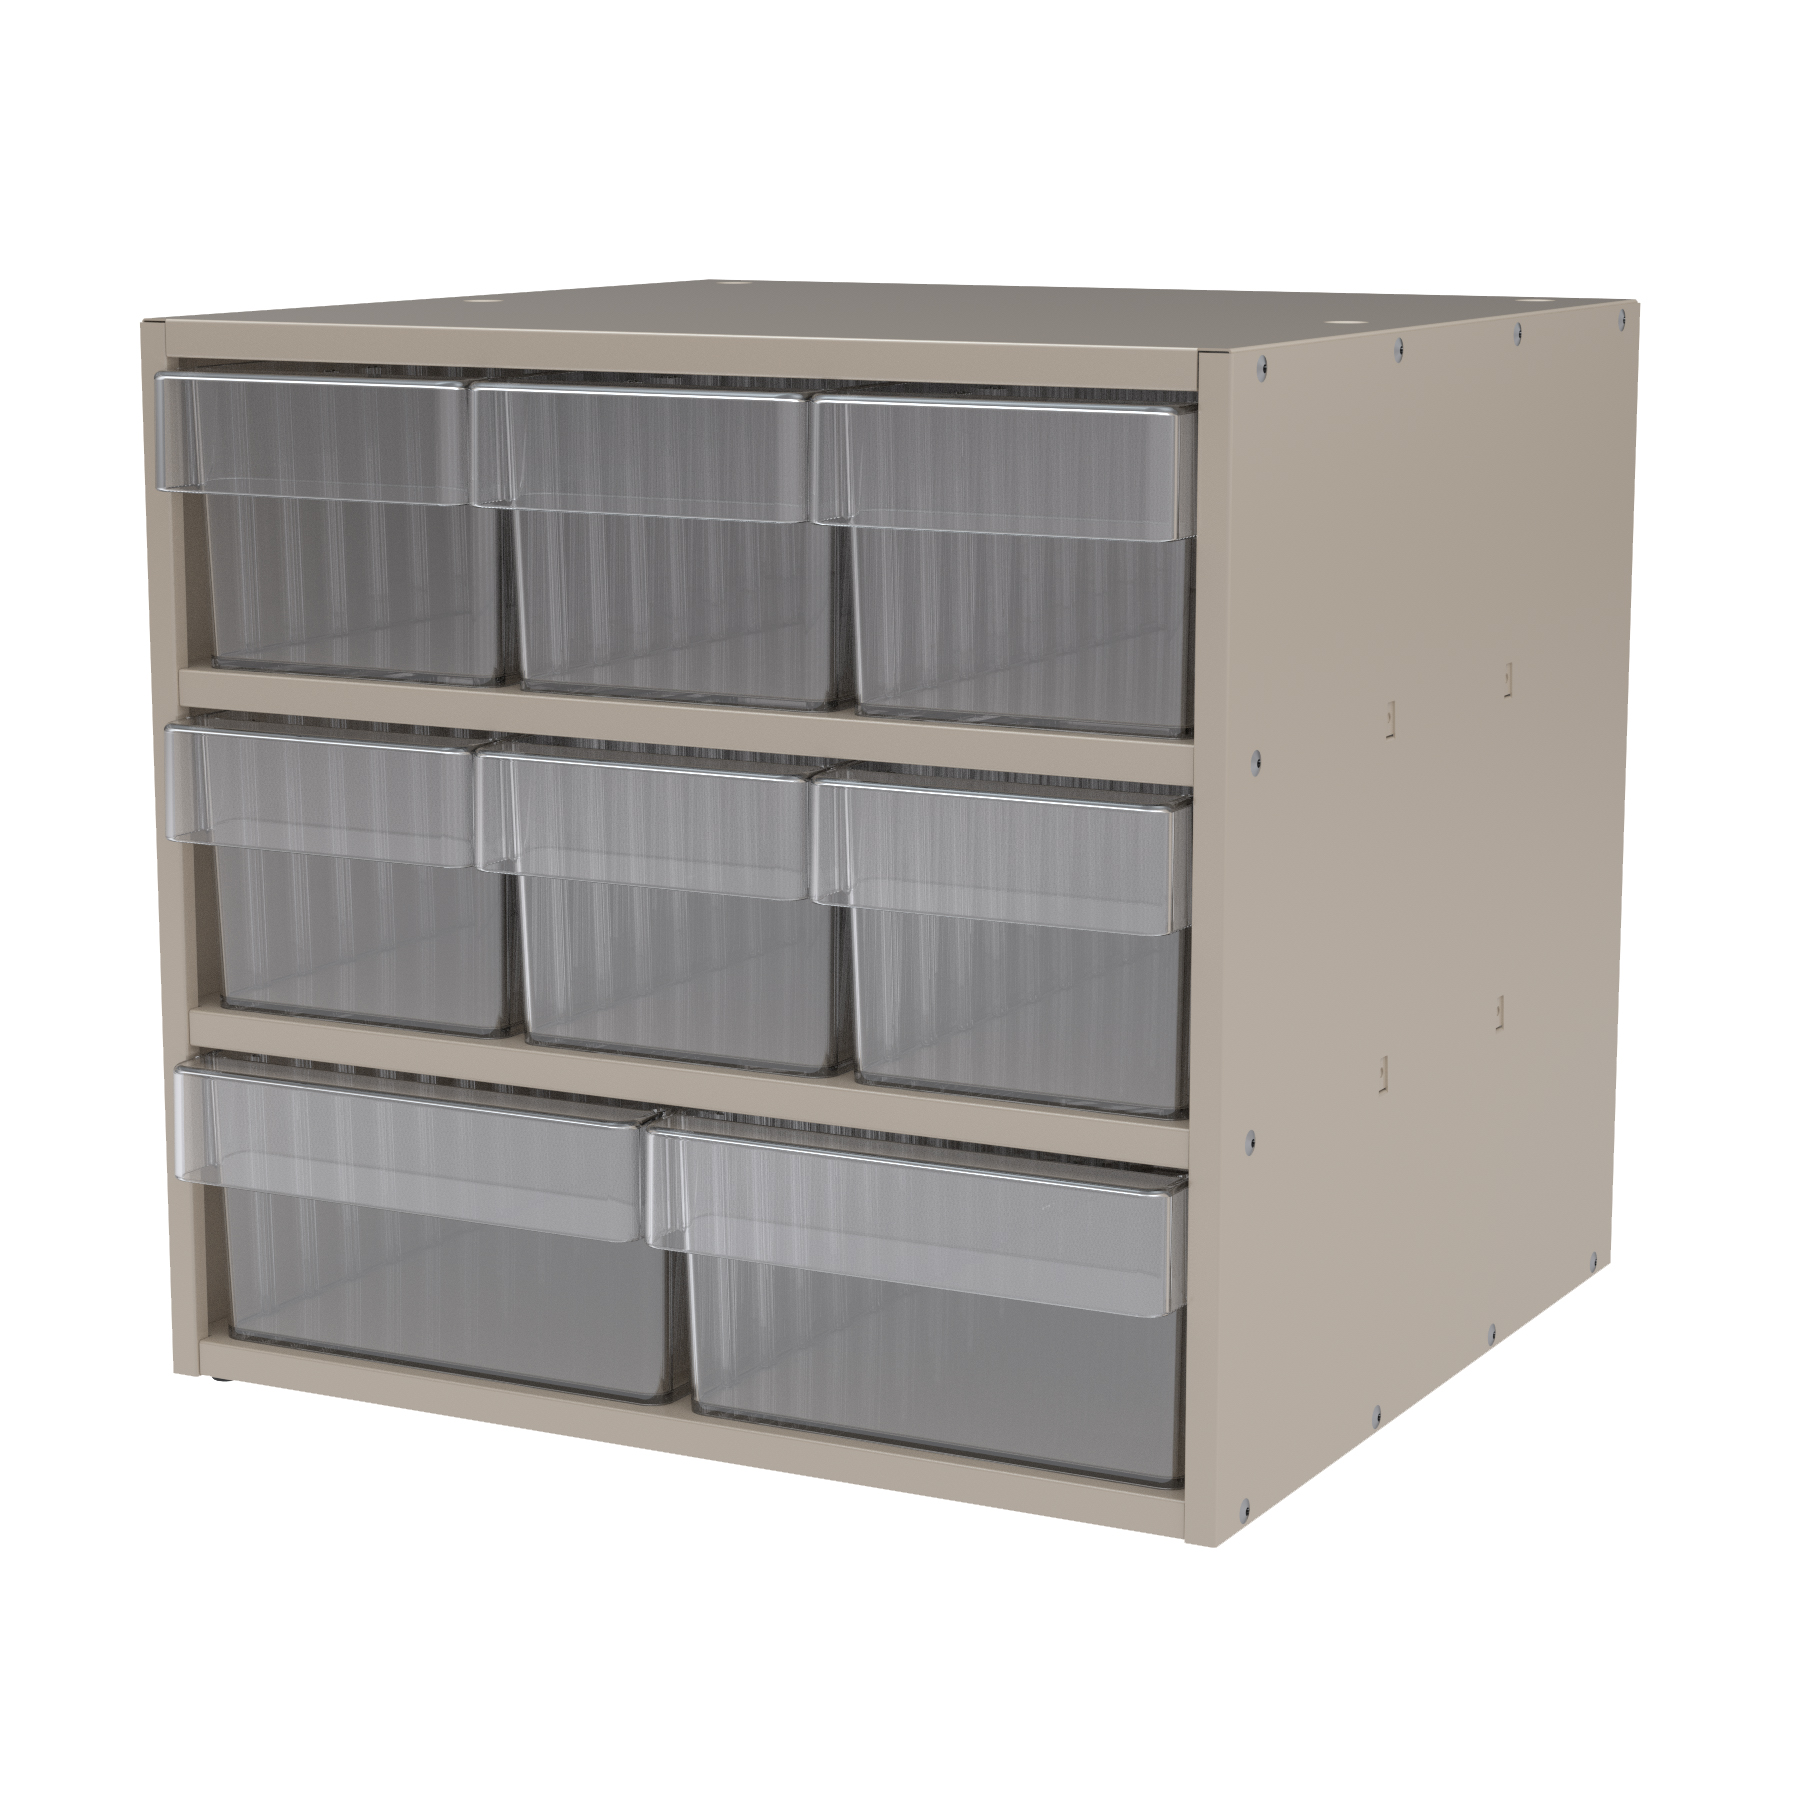 Item DISCONTINUED by Manufacturer.  Modular Cabinet, 18x17x16, 8 Drawers, Putty/Clear (AD1817PASTCRY).  This item sold in carton quantities of 1.